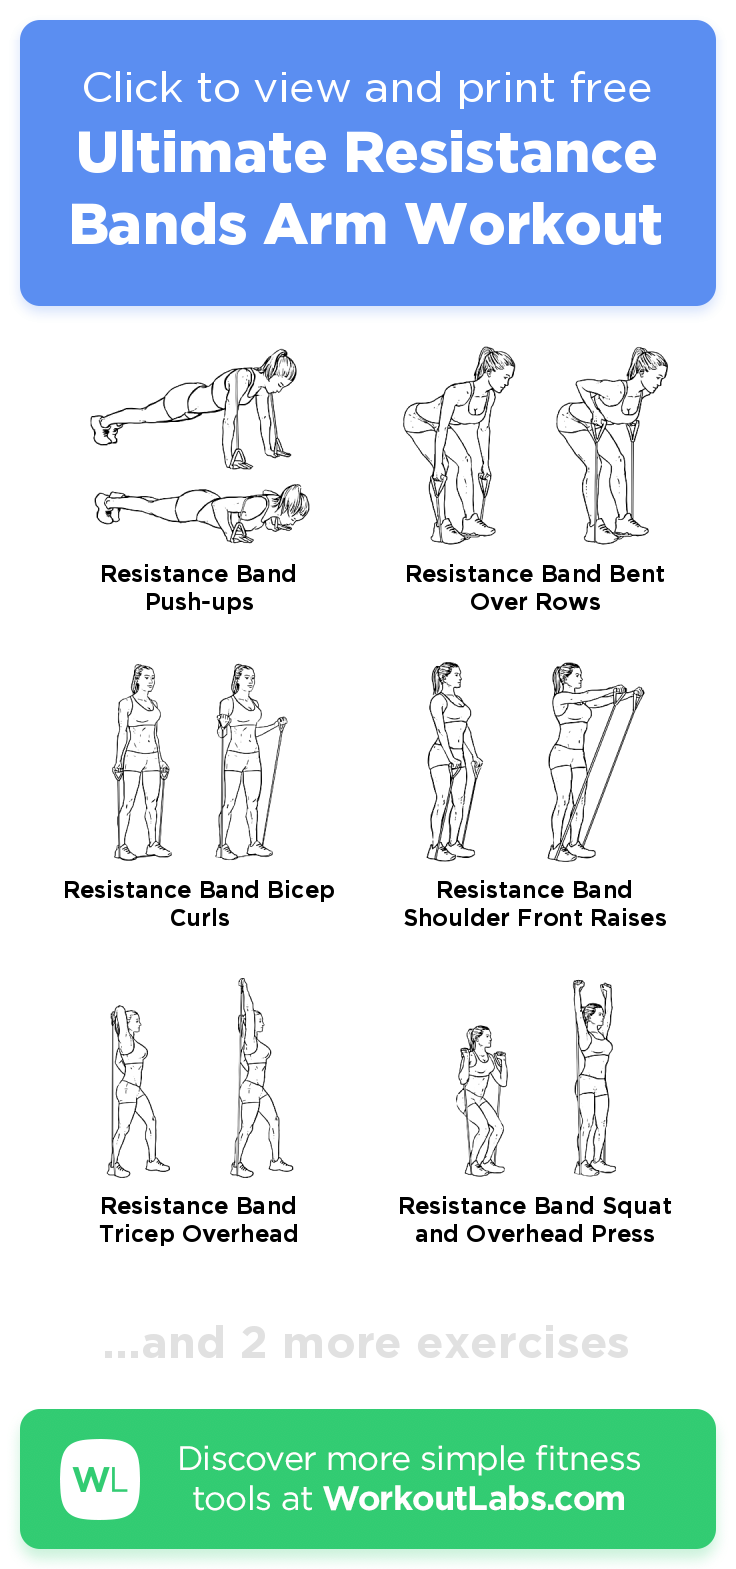 Ultimate Resistance Bands Arm Workout Click To View And Print This